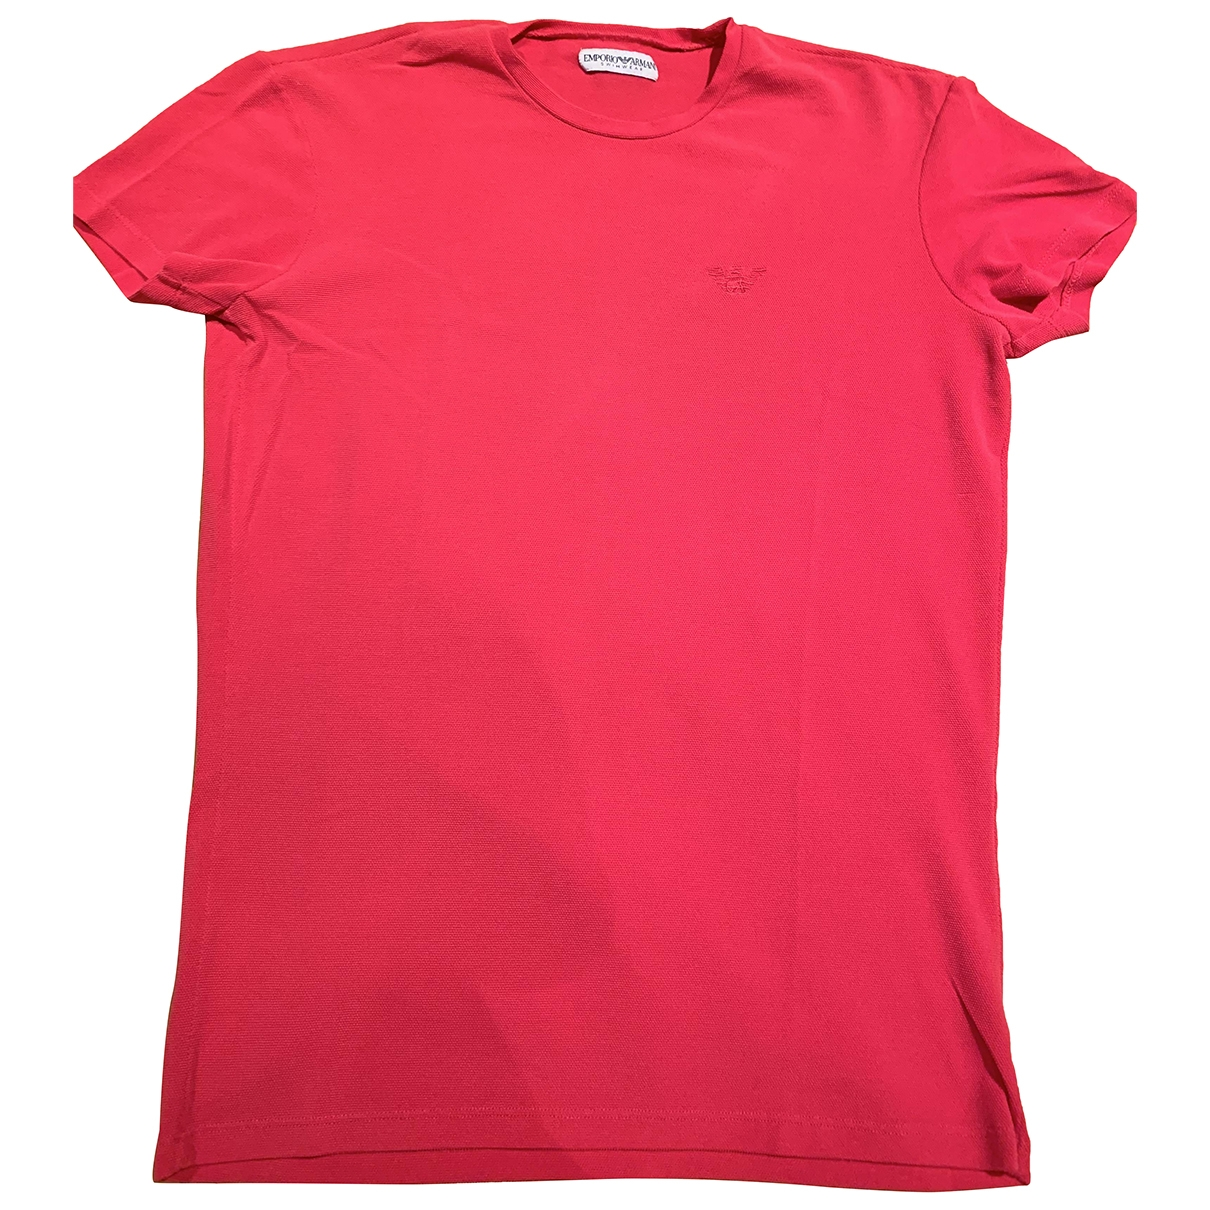 Emporio Armani \N Red T-shirts for Men L International